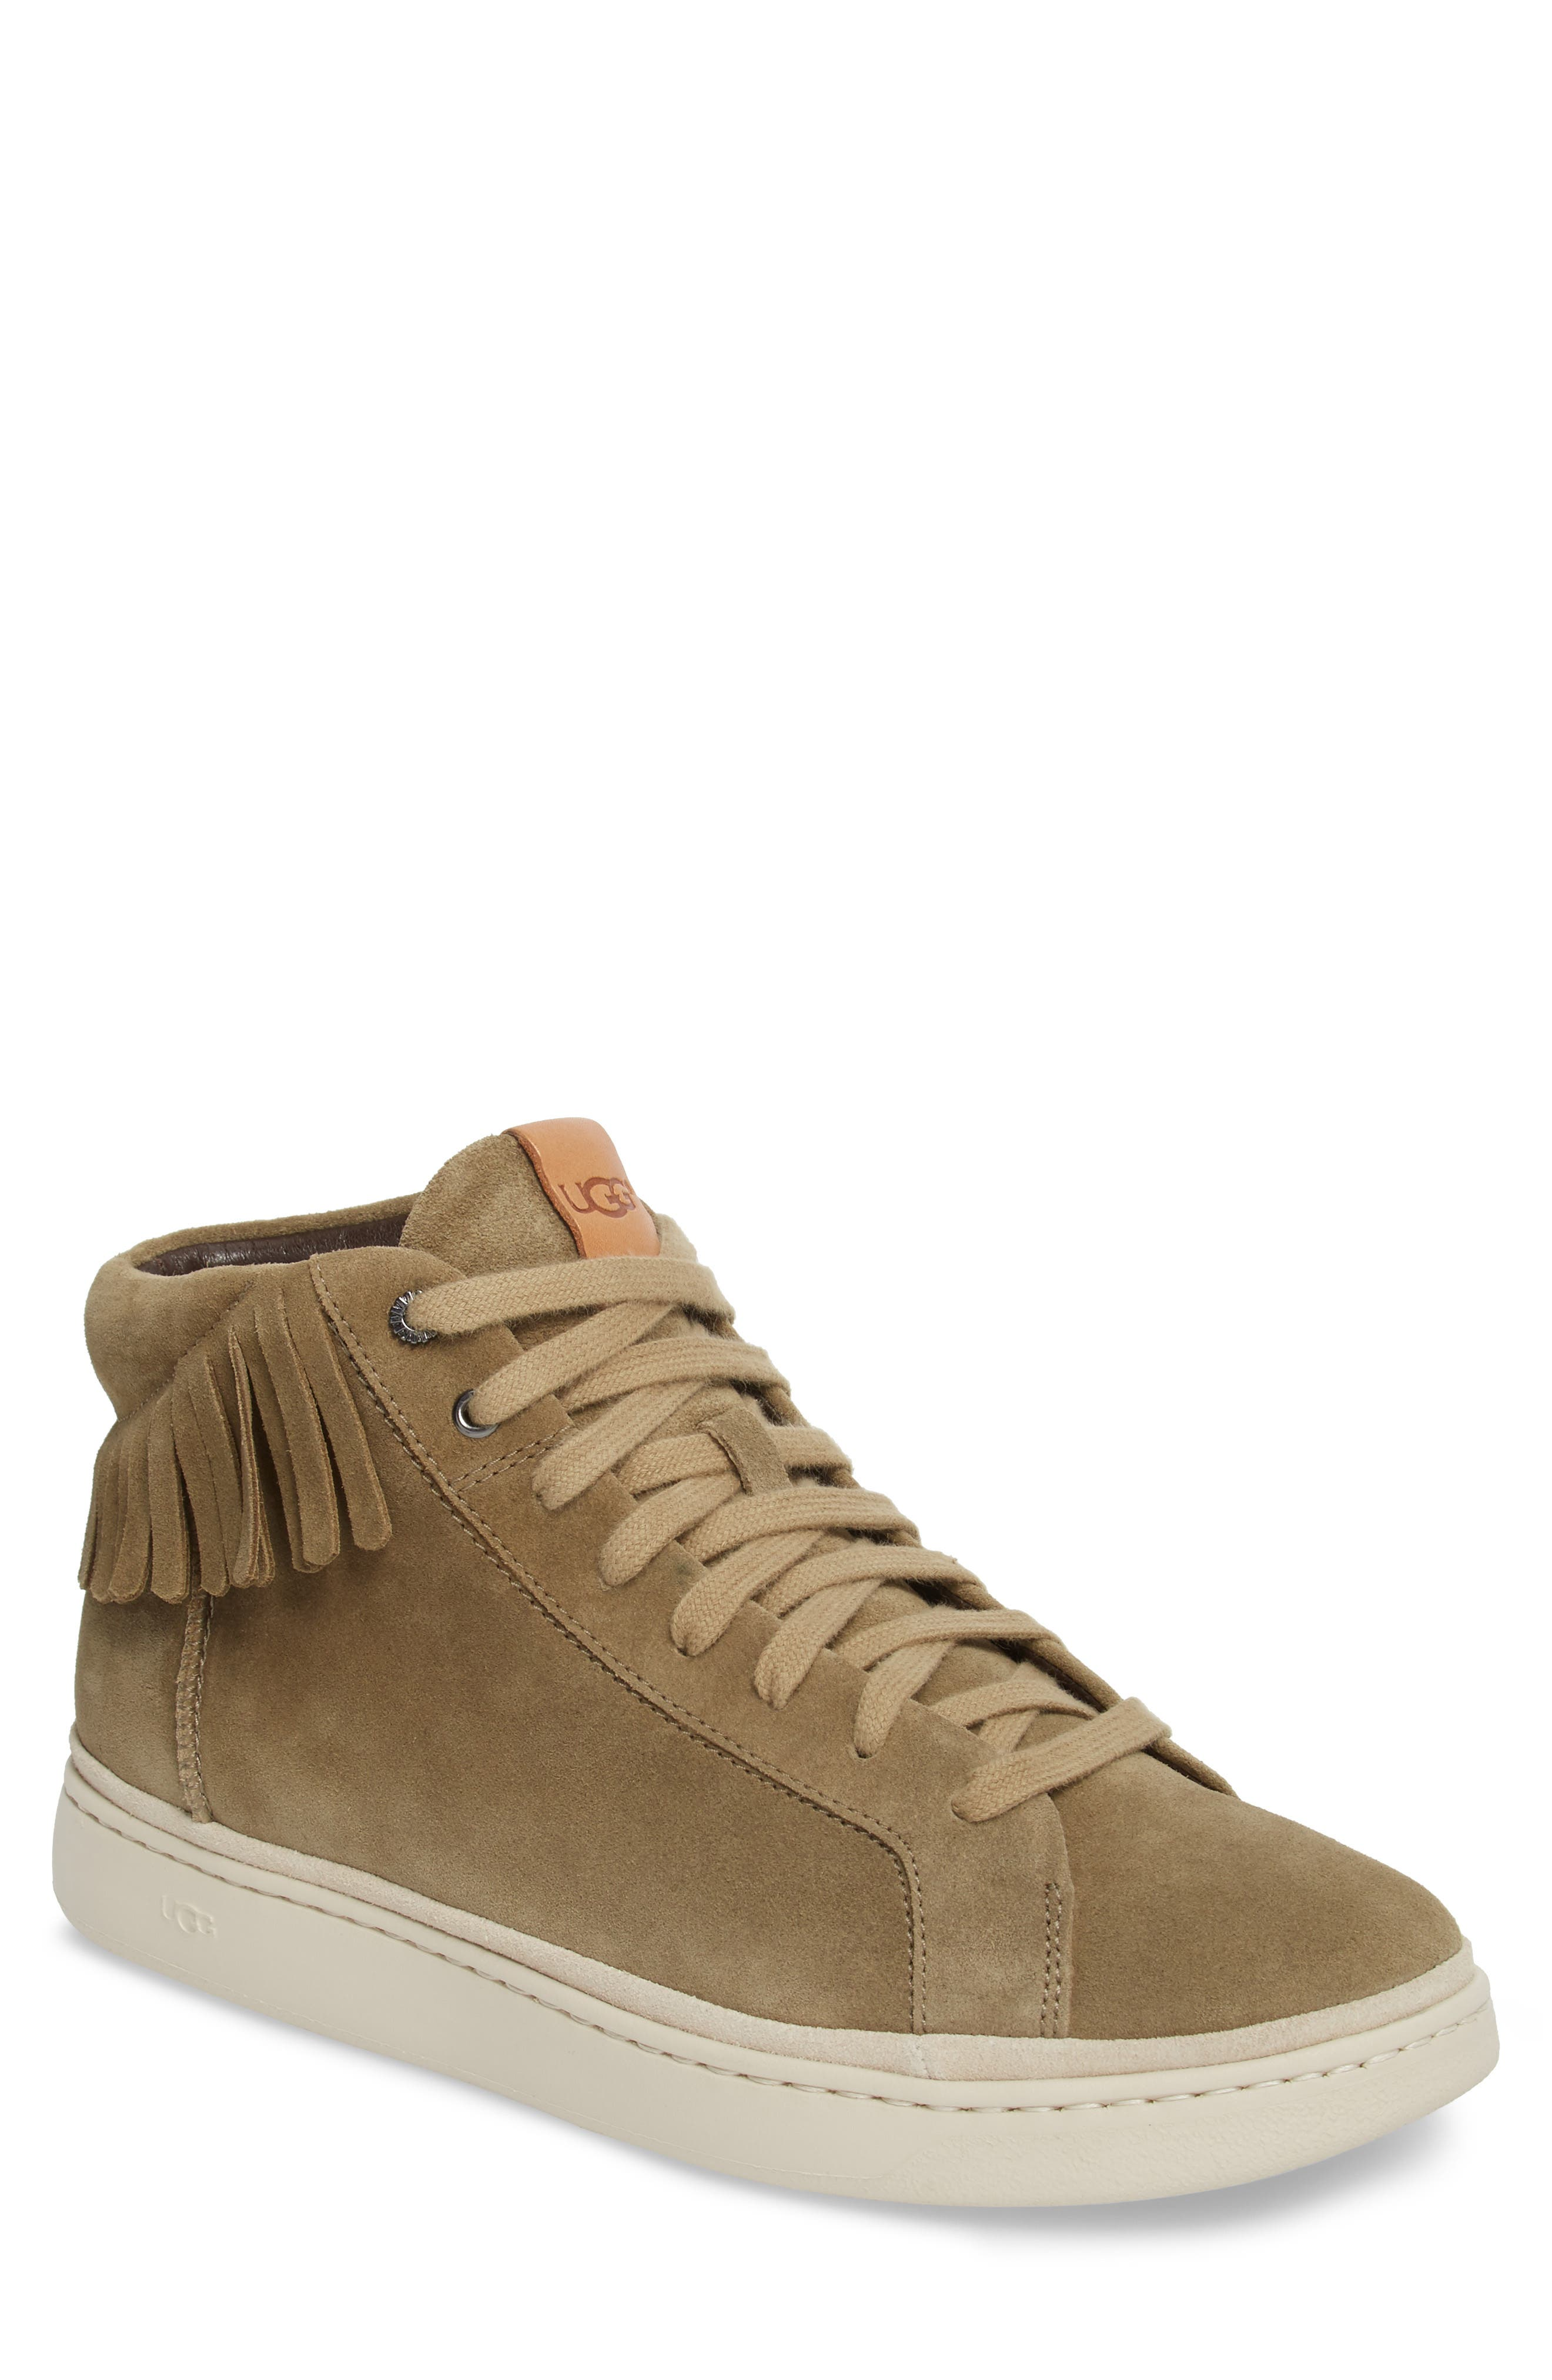 Main Image - UGG® Brecken Fringe High-Top Sneaker (Men)